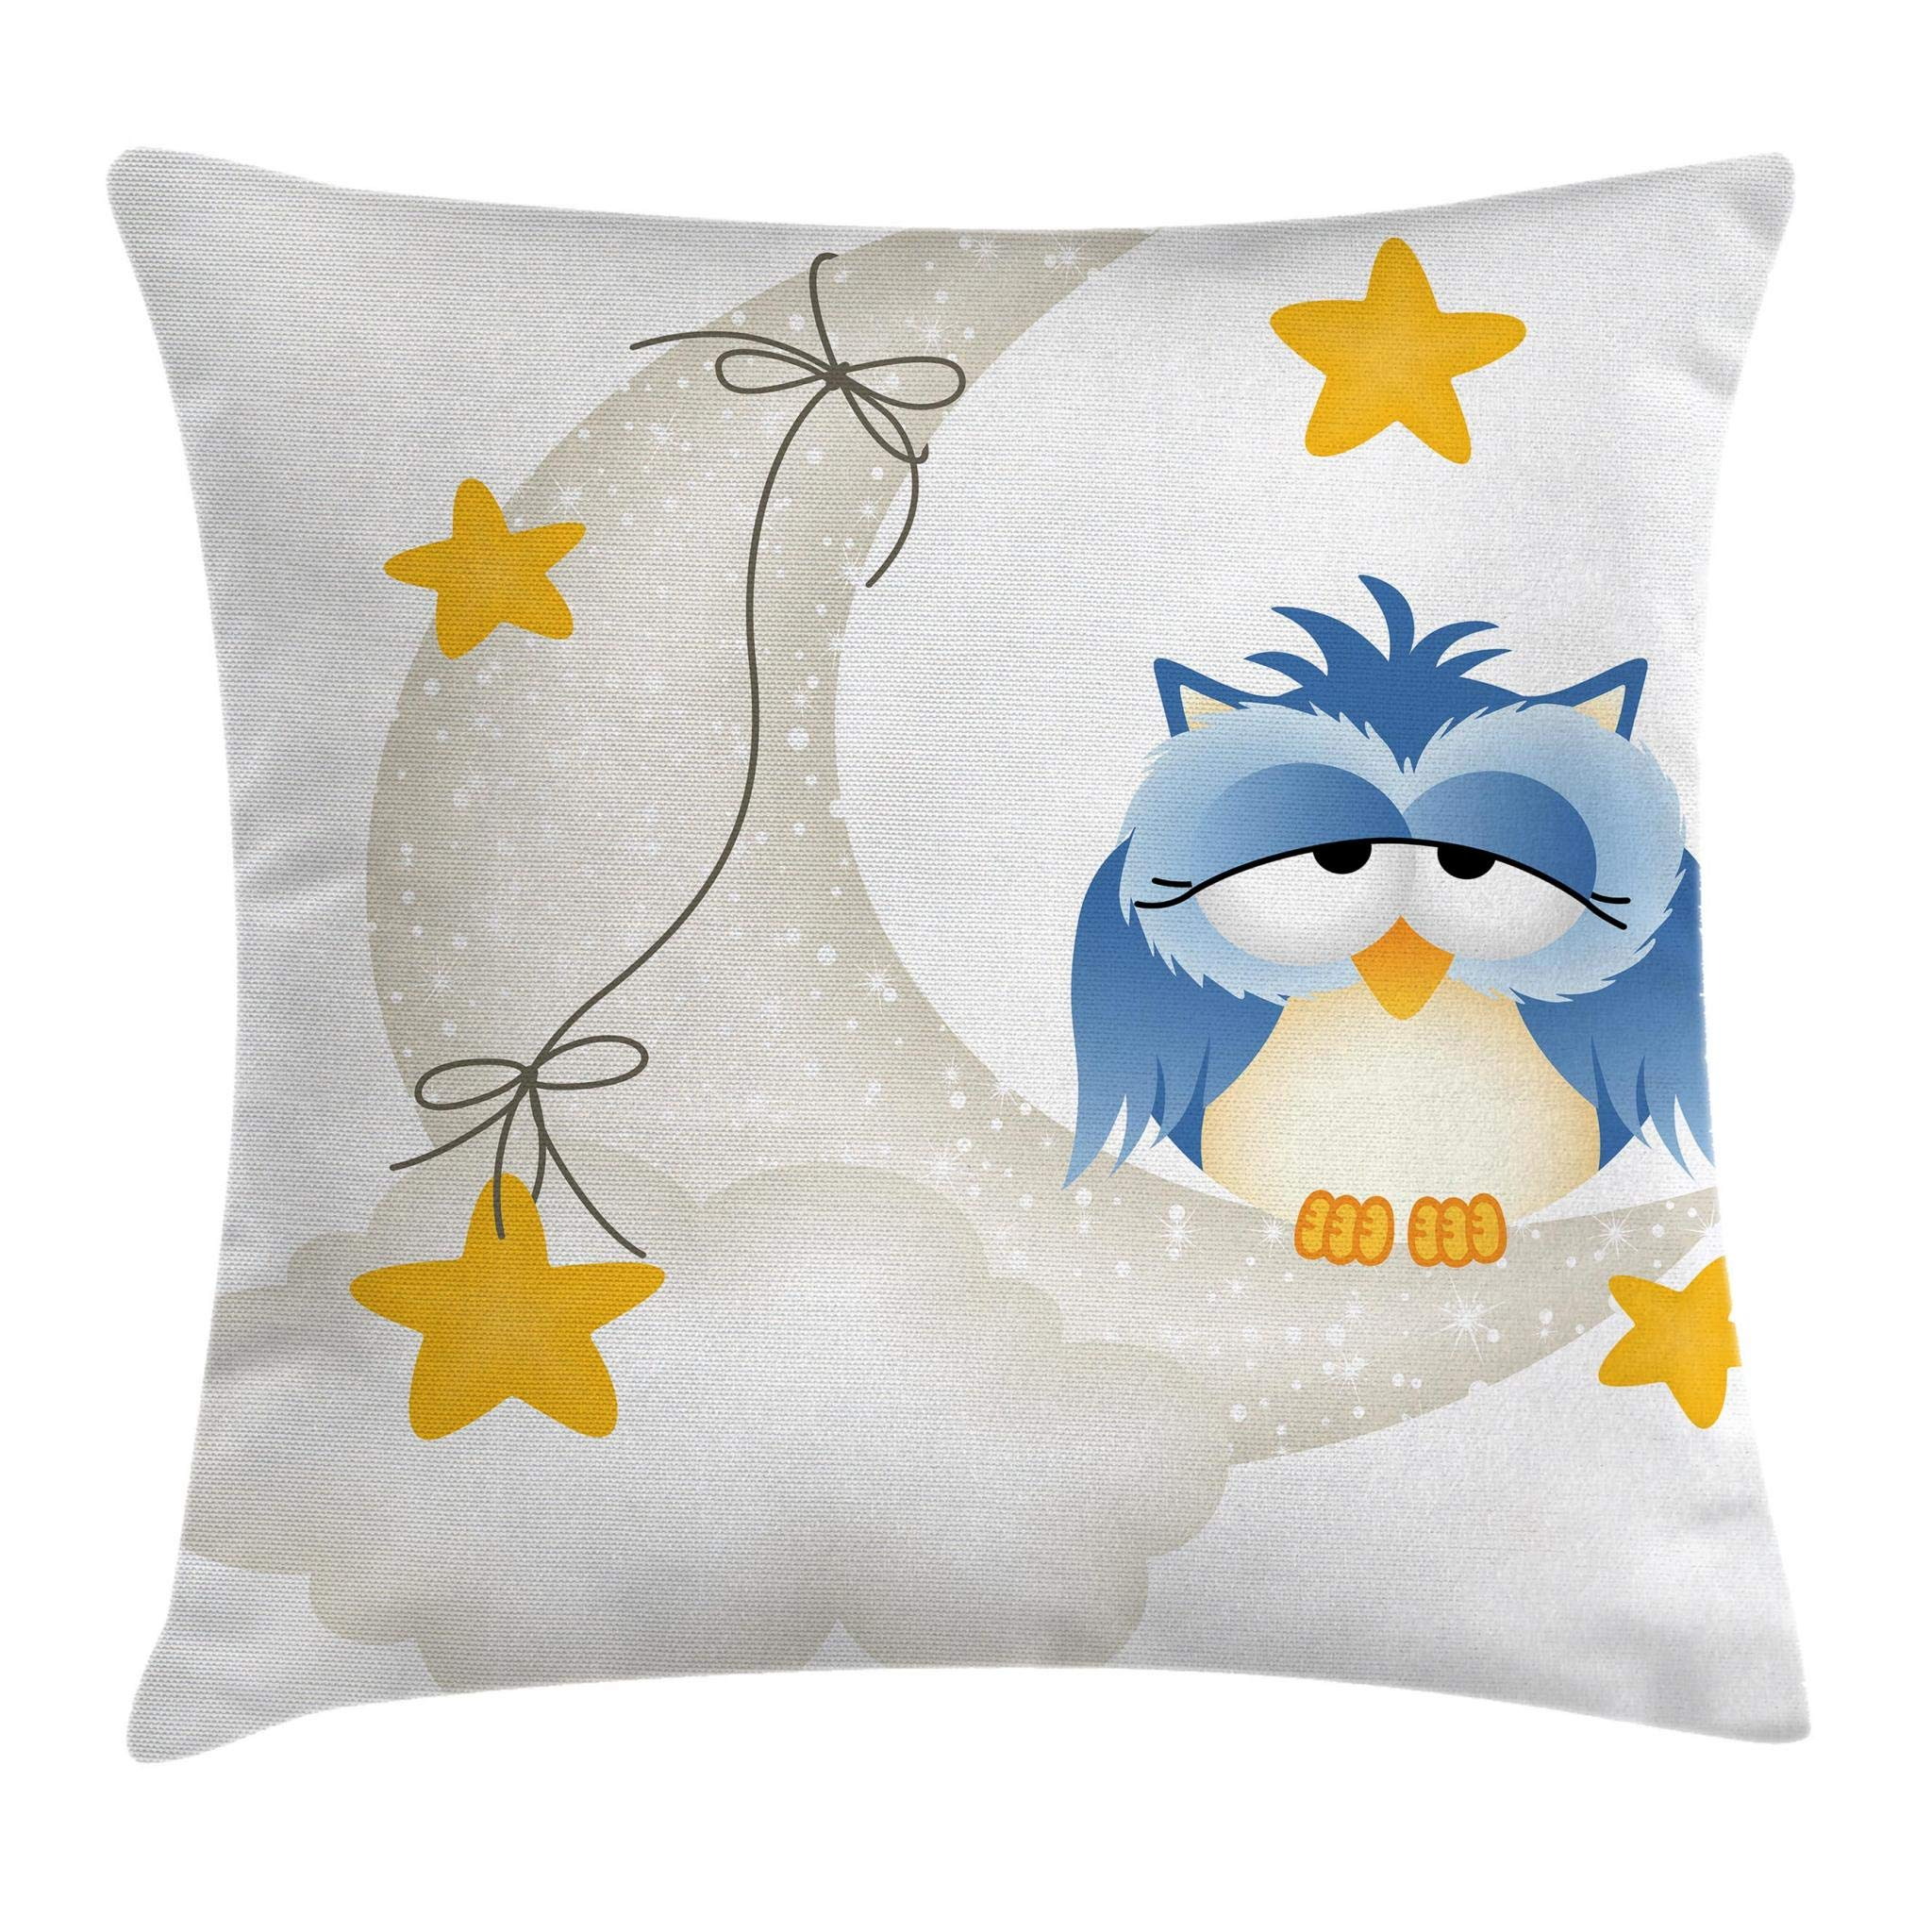 Ambesonne Kids Throw Pillow Cushion Cover, Cute Owl Dozing on Crescent Moon with Stars Good Sleep Baby Print, Decorative Square Accent Pillow Case, 20 X 20 Inches, Light Blue Pearl Earth Yellow